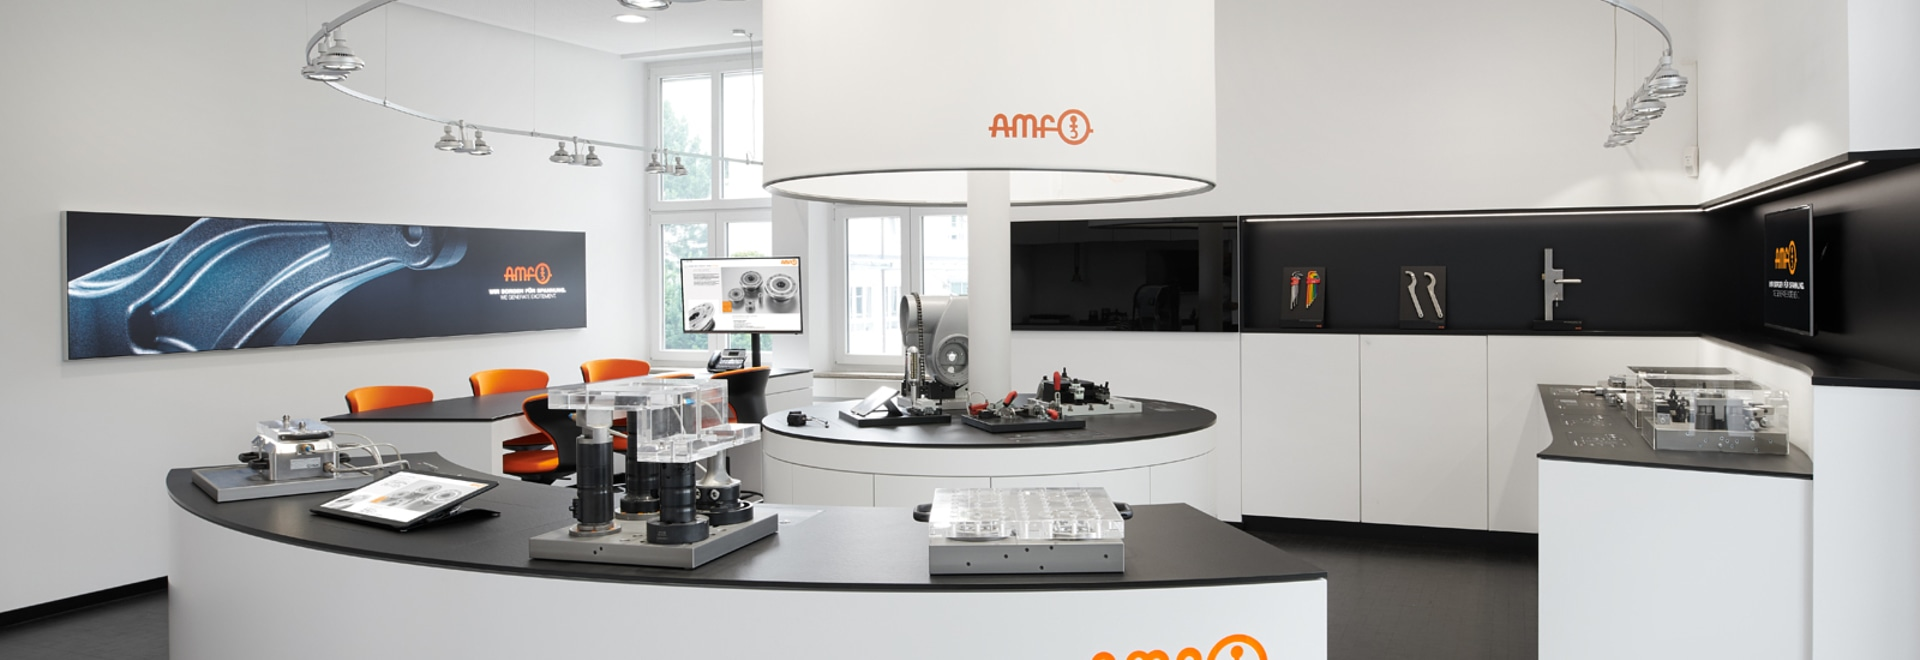 Above all, the jury praised the modern and clear interior design: modern AMF showroom.